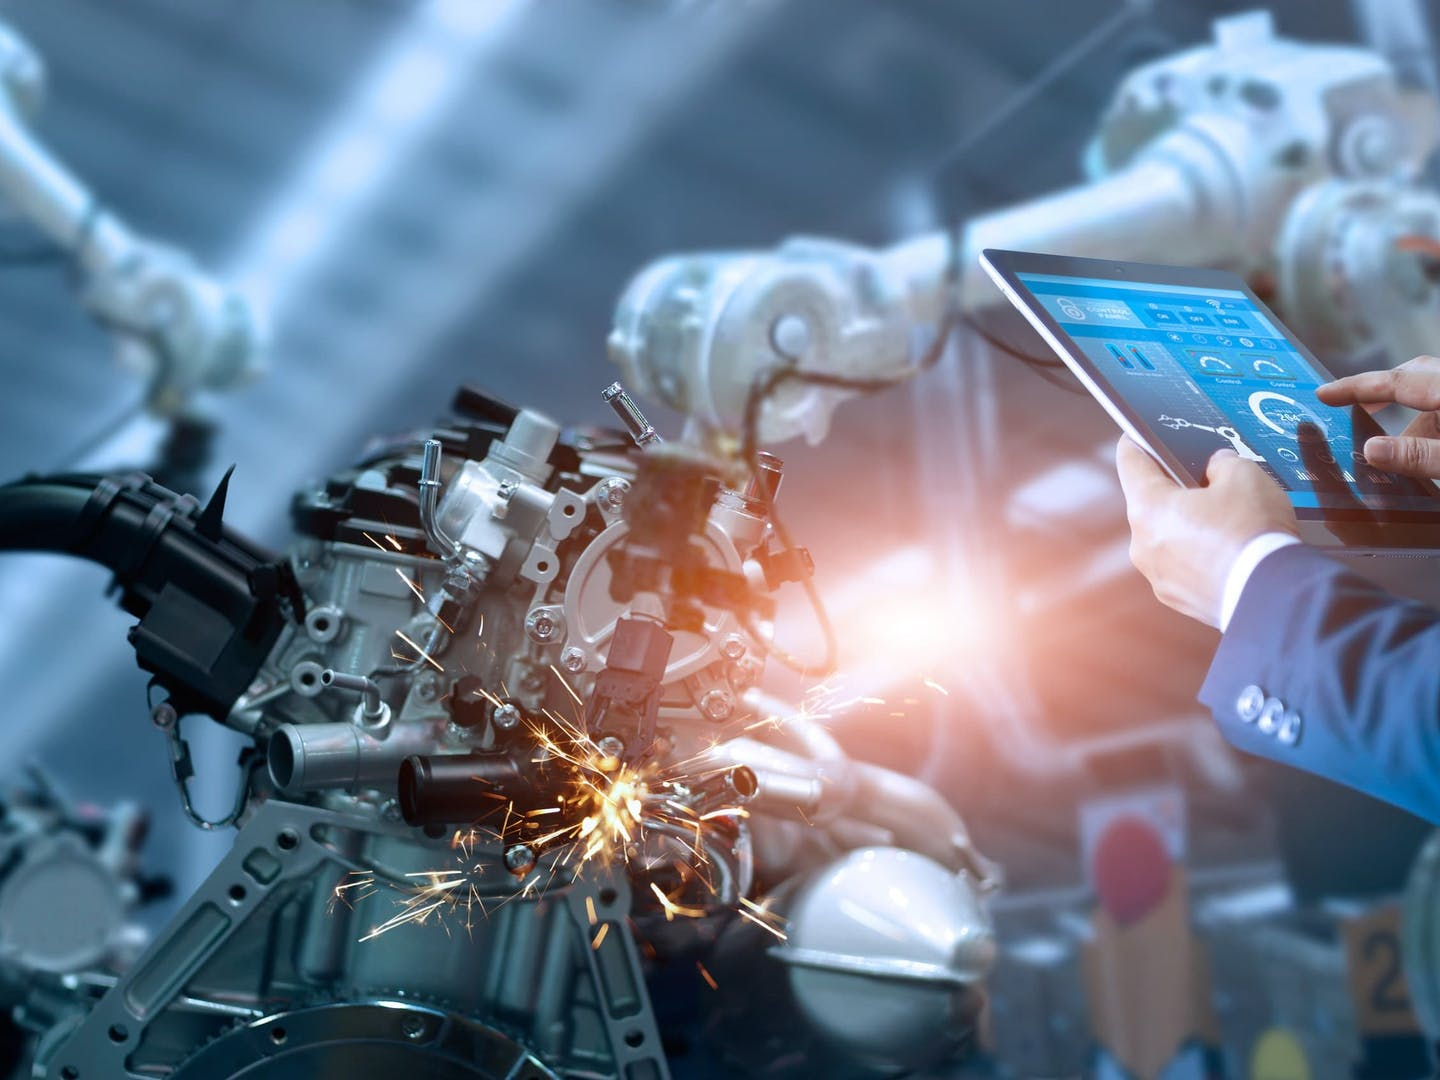 How robotics are changing the manufacturing industry